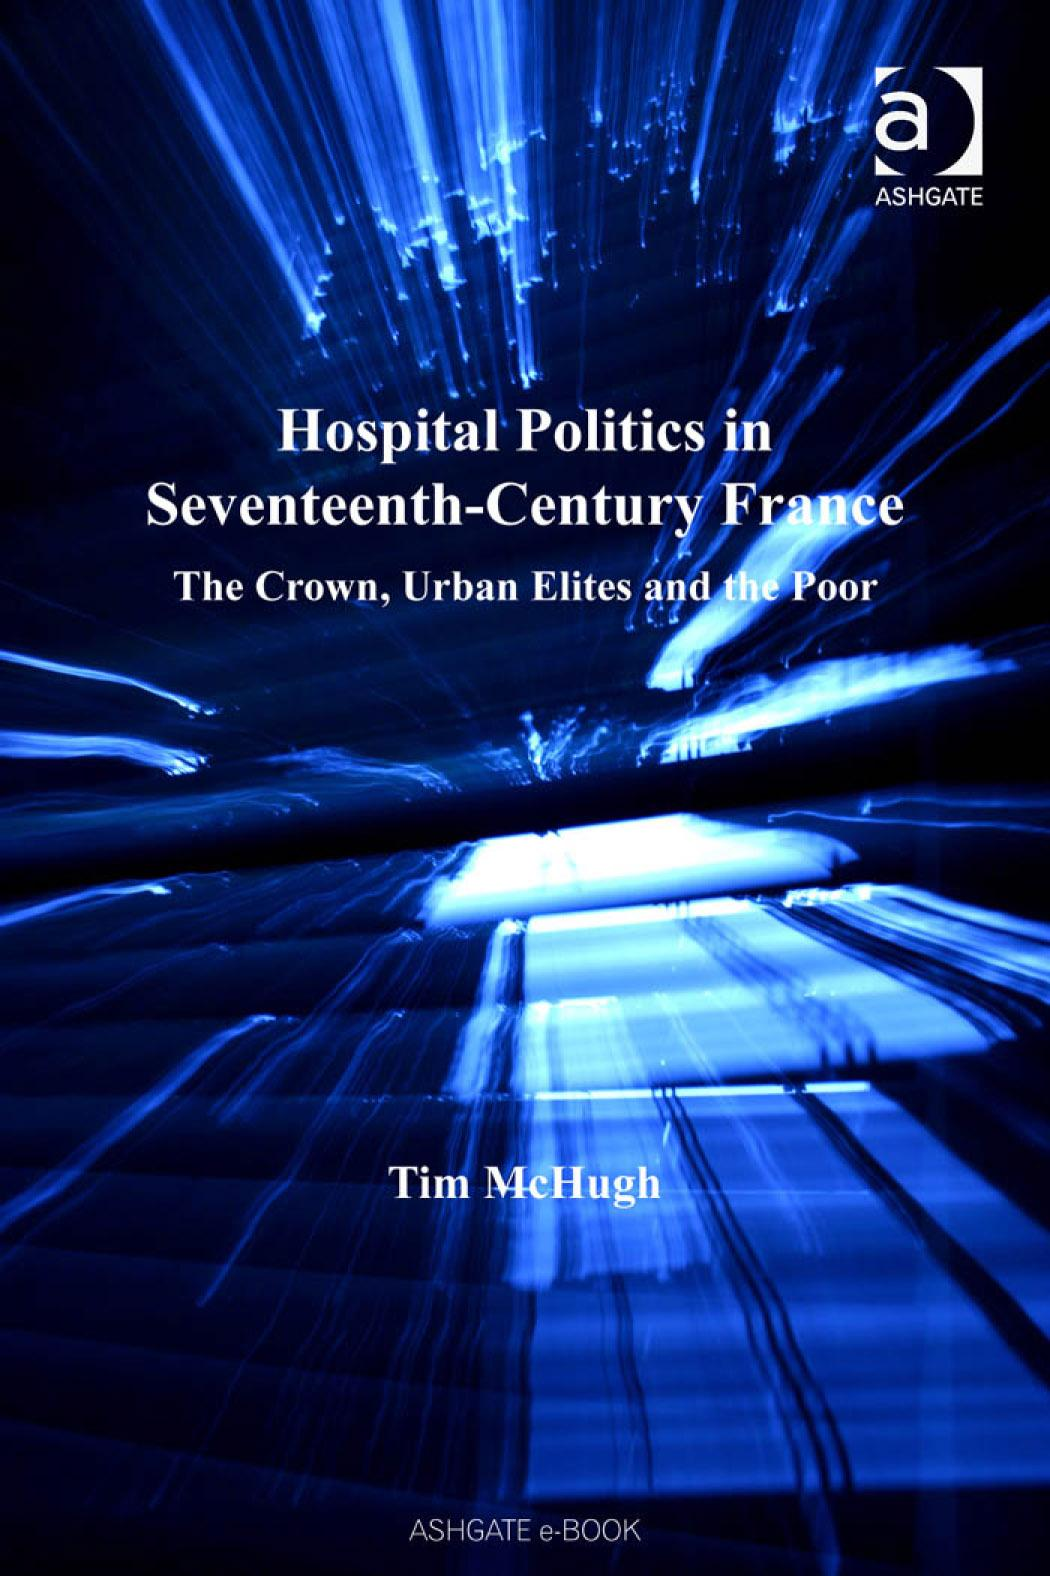 Hospital Politics in Seventeenth-Century France: The Crown, Urban Elites and the Poor